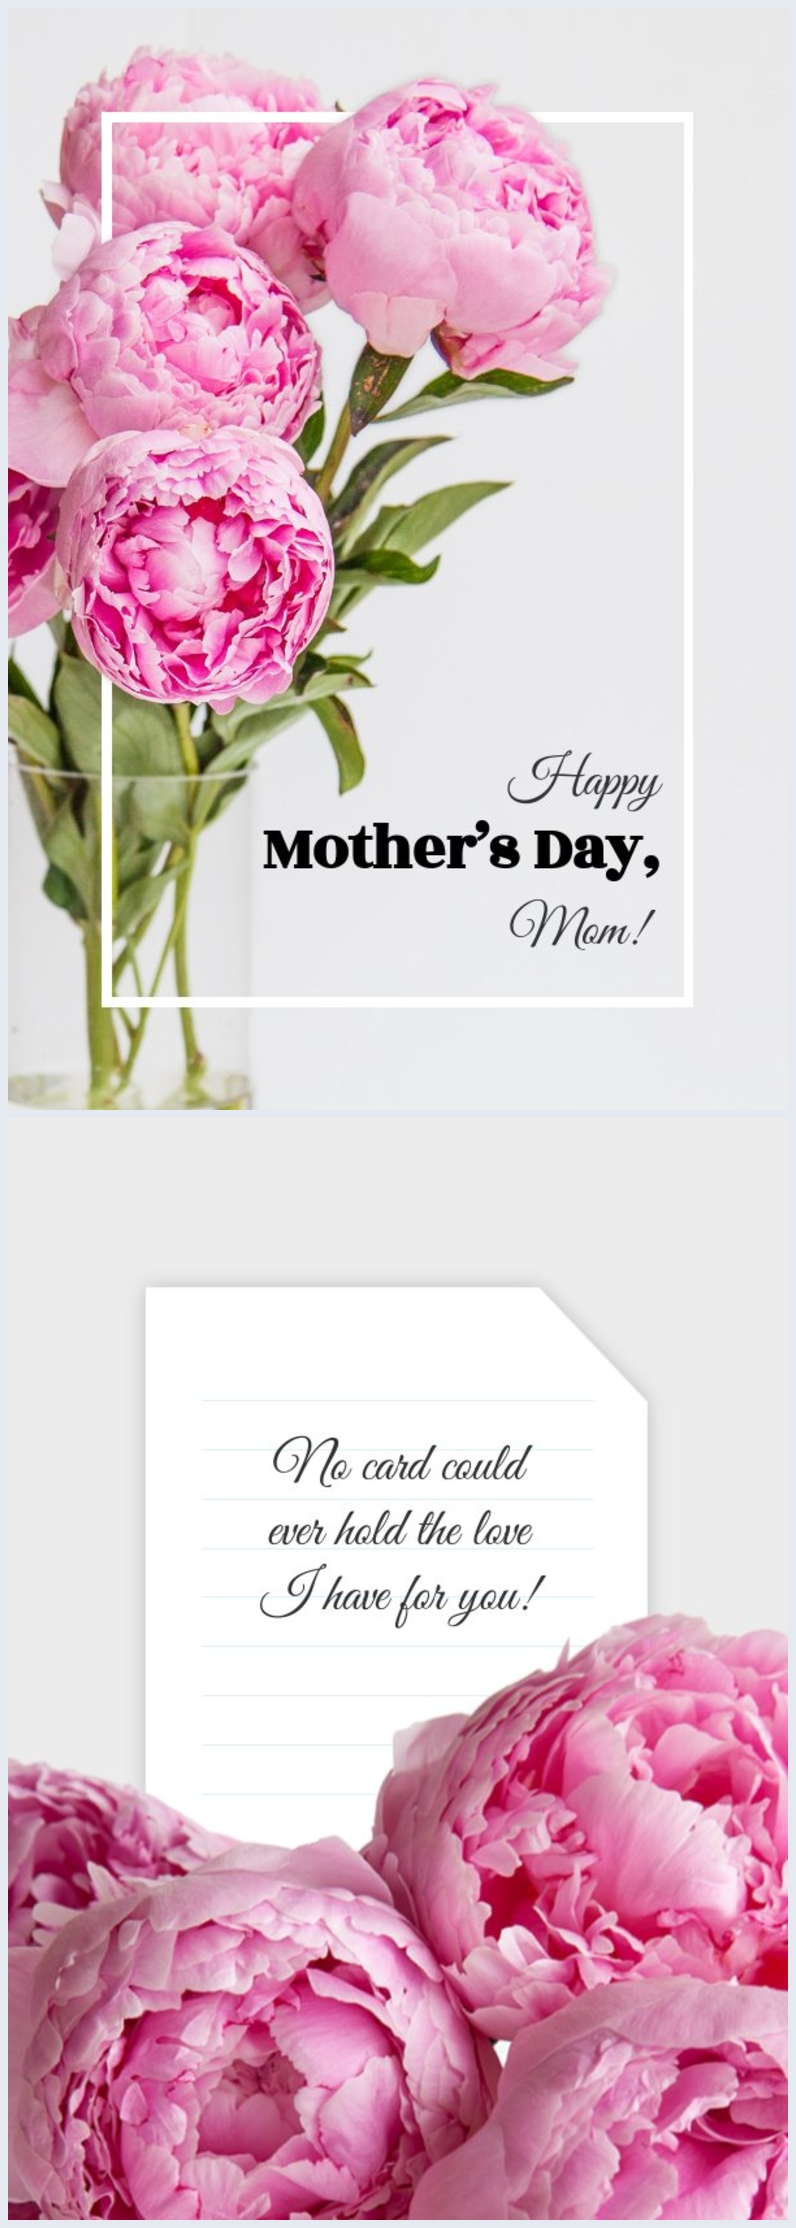 Mother's Day Card Template & Design